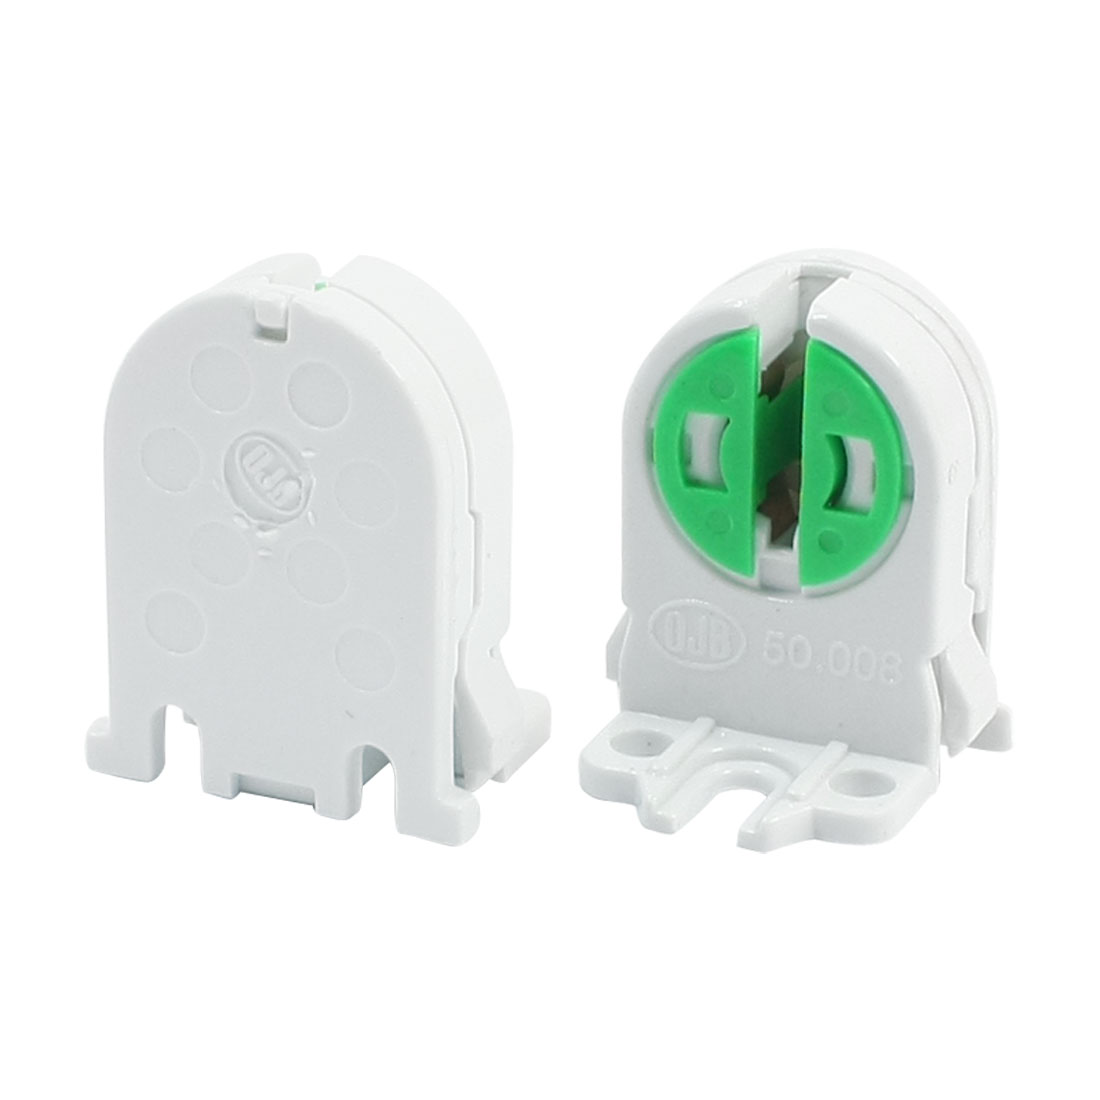 2Pcs Fluorescent Lamp Holder Sockets White for T5 T4 Tube Light